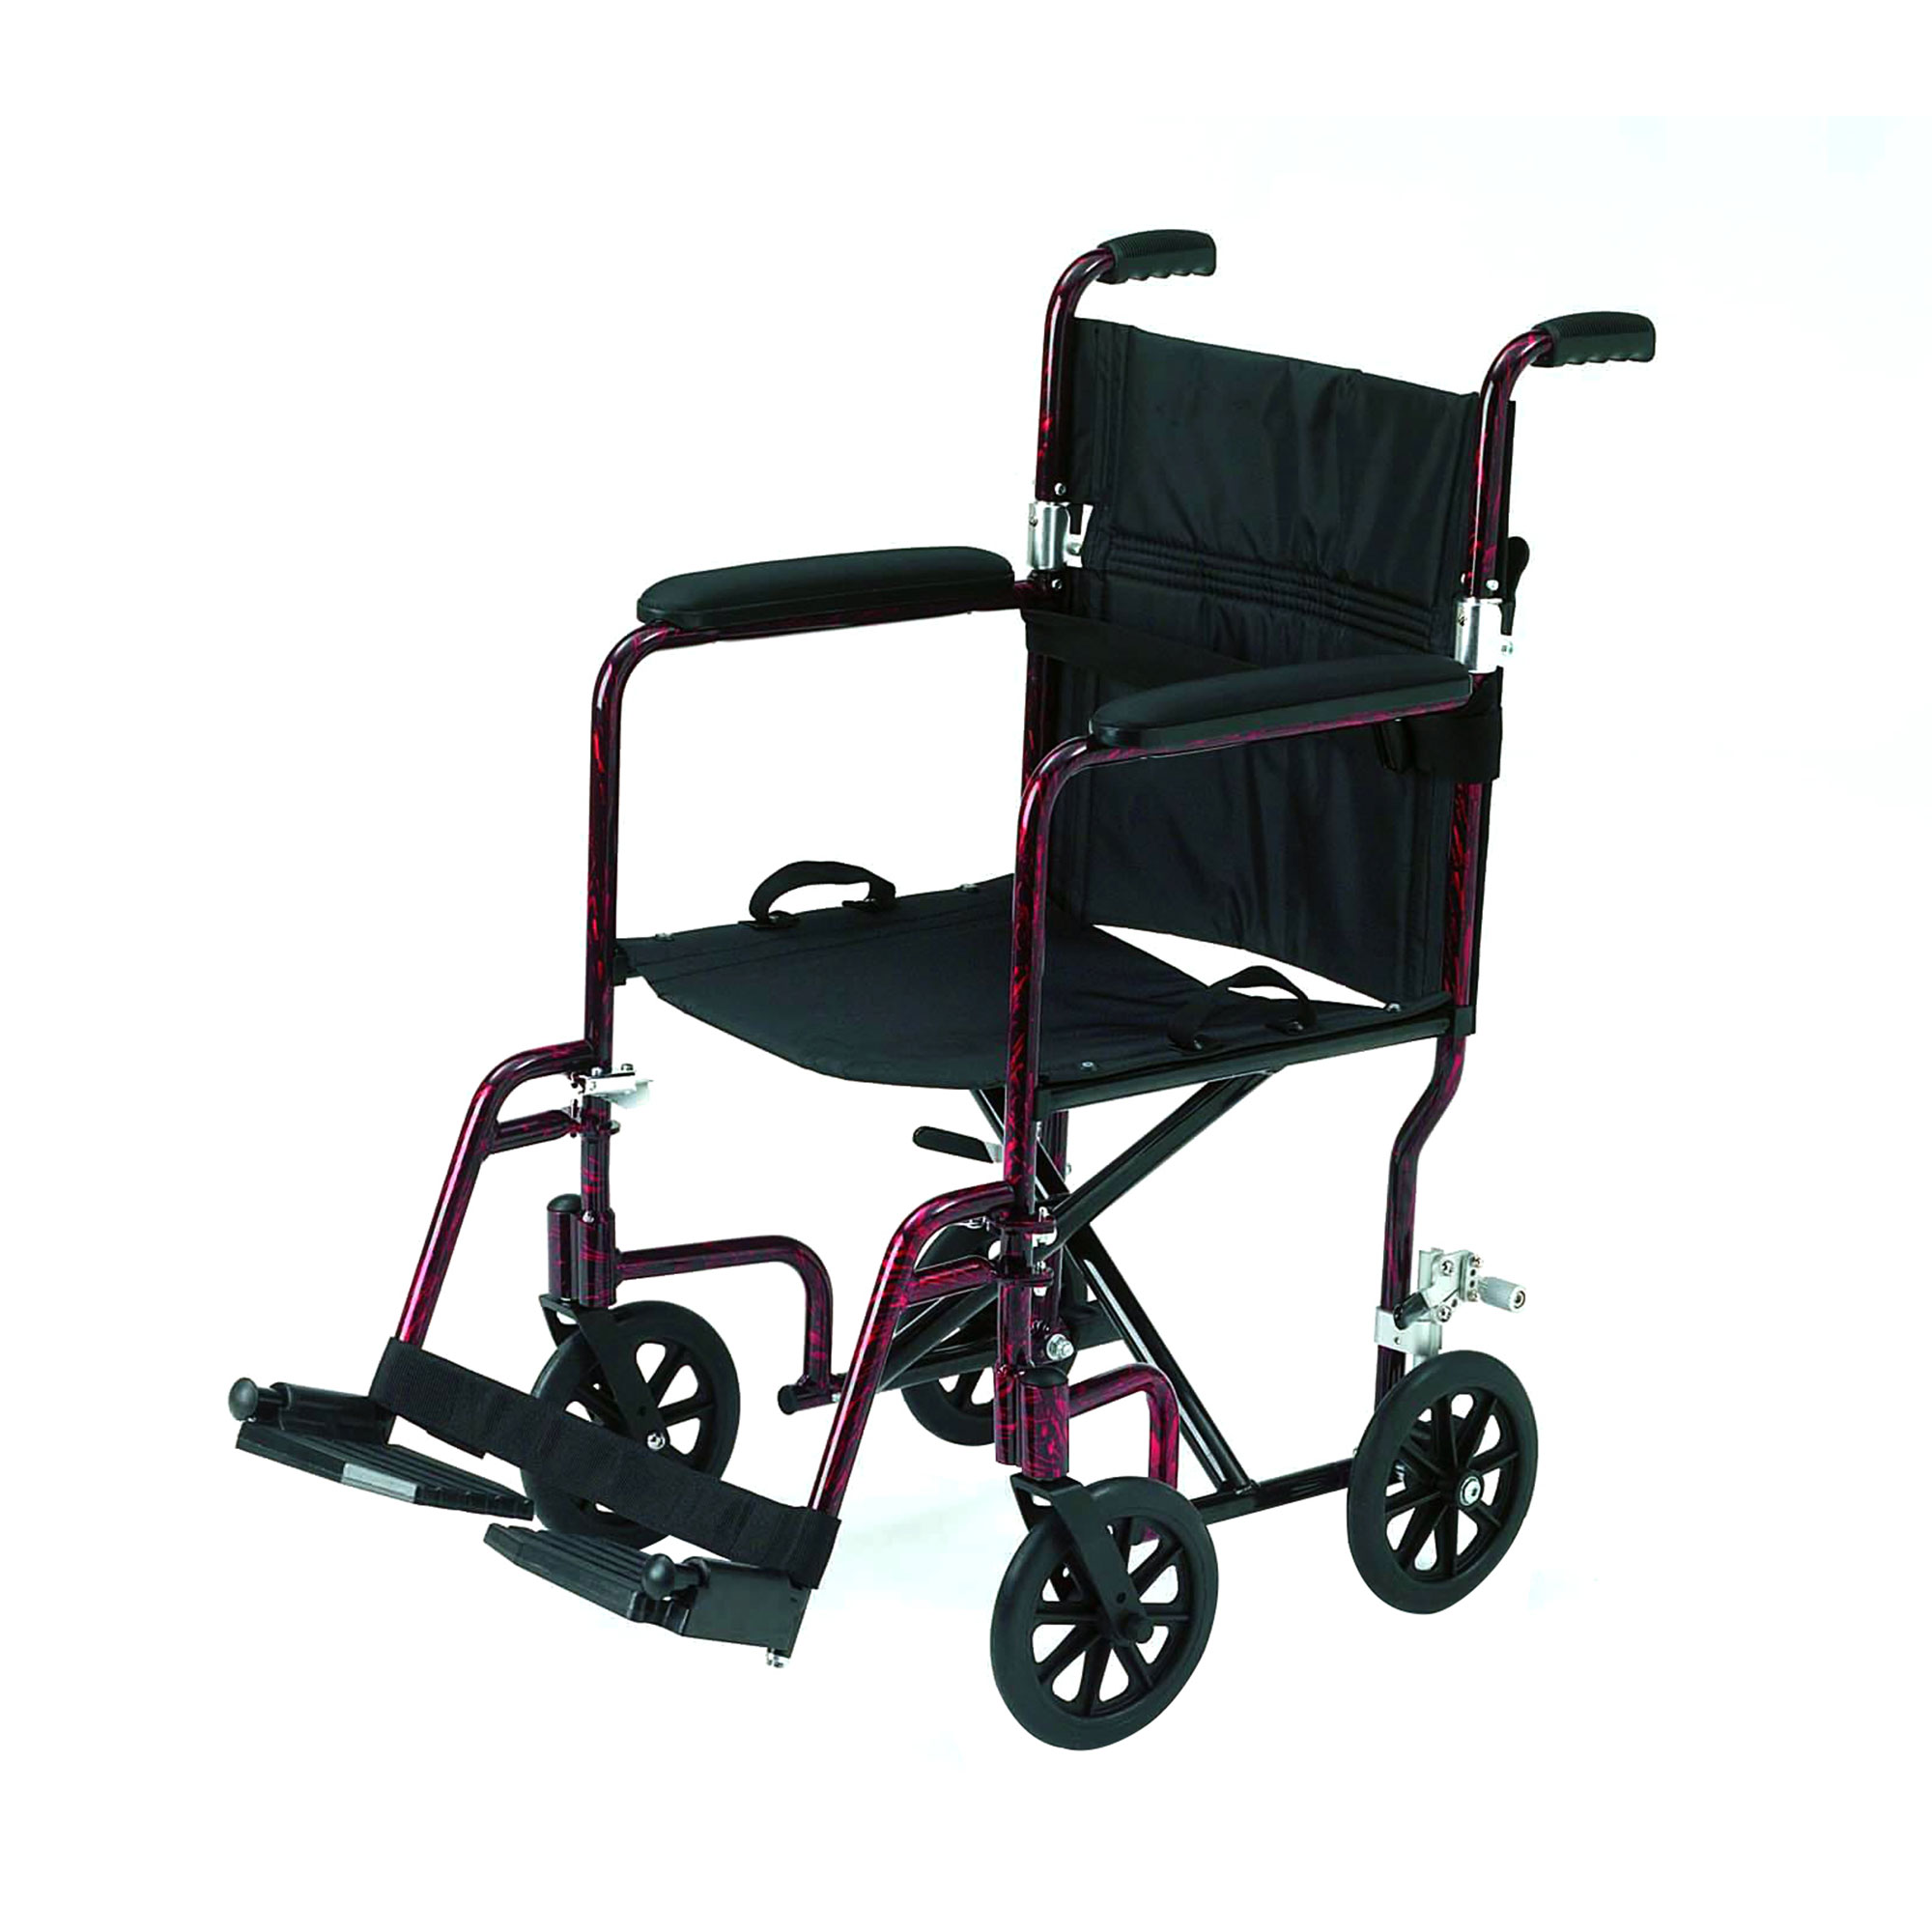 rs chairs lightweight trend dmi uncategorized inspiring nsyd pic transport travel chair and folding inspiration for wheelchair